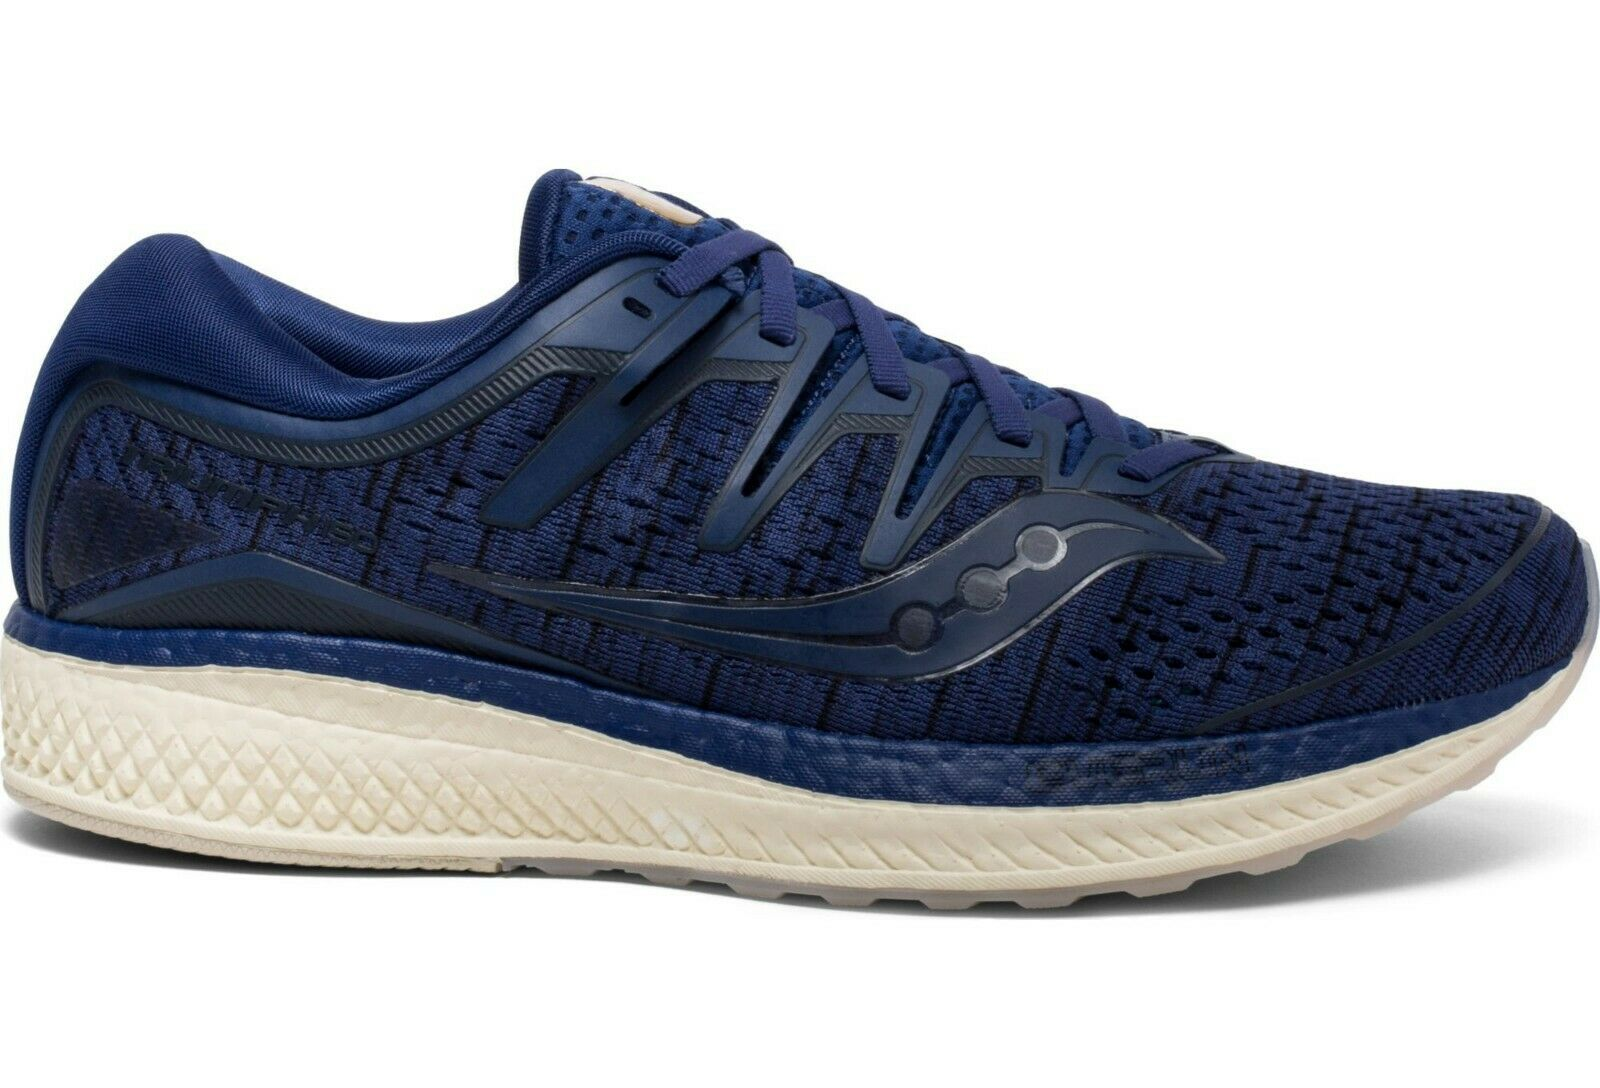 Saucony S20462-41 Triumph ISO 5 Navy Shade Mens Neutral Running Trainers shoes